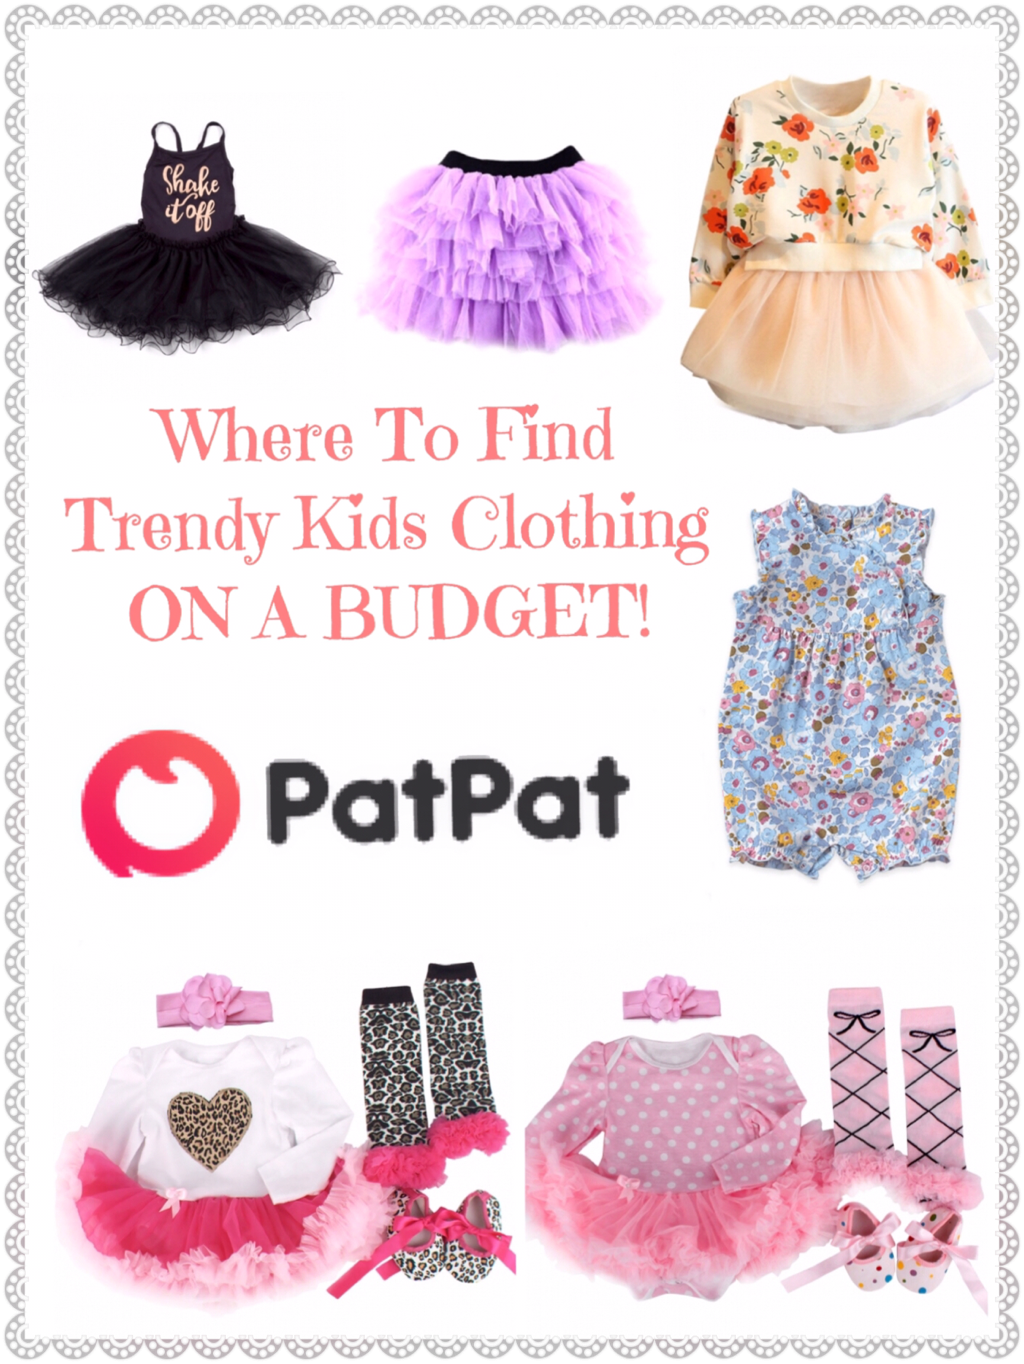 WHERE TO FIND TRENDY KIDS CLOTHING ON A BUDGET PATPAT